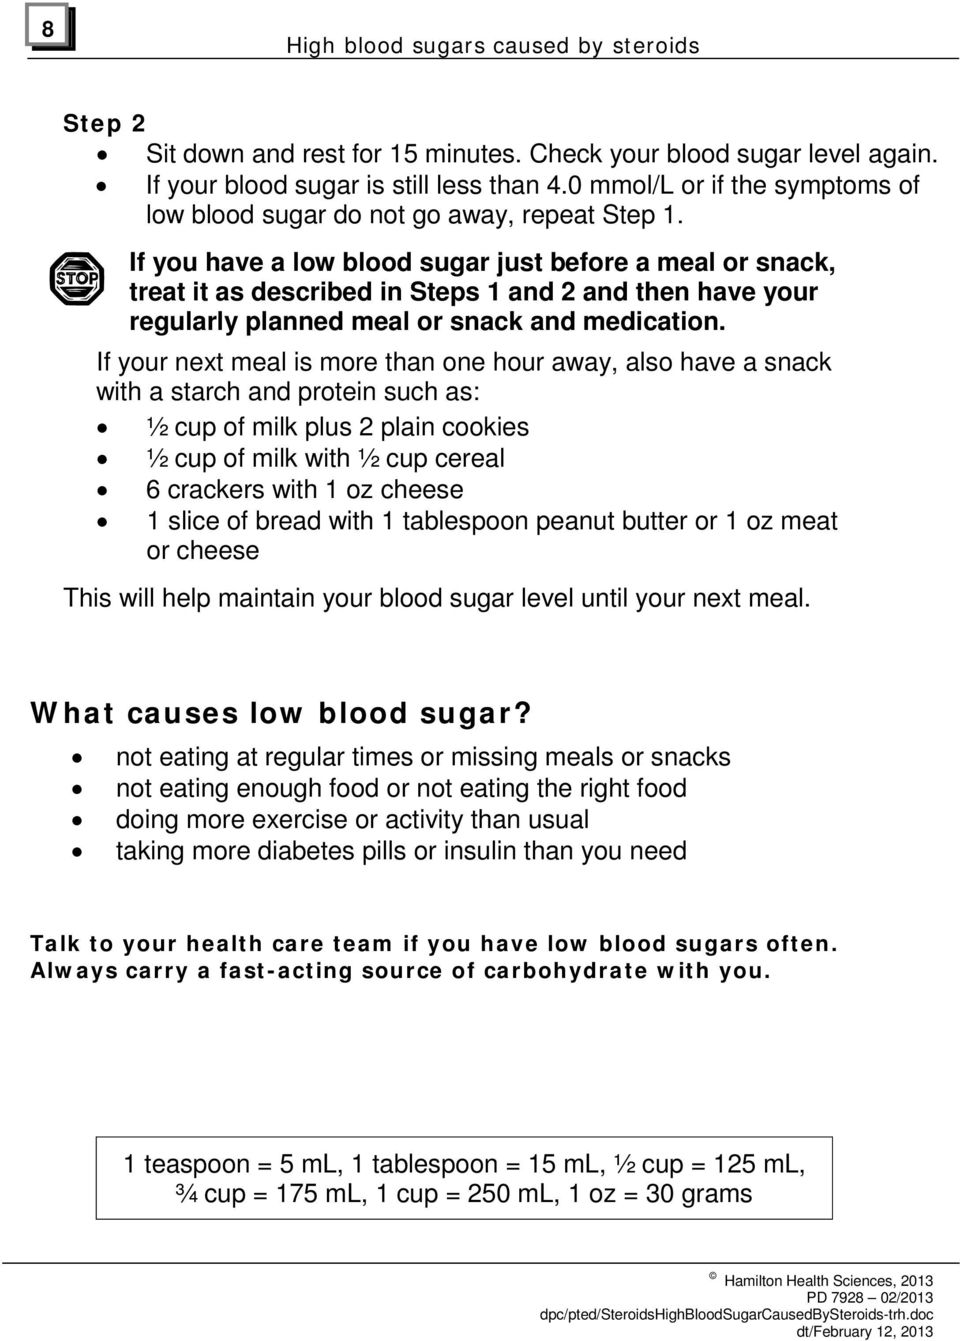 If you have a low blood sugar just before a meal or snack, treat it as described in Steps 1 and 2 and then have your regularly planned meal or snack and medication.